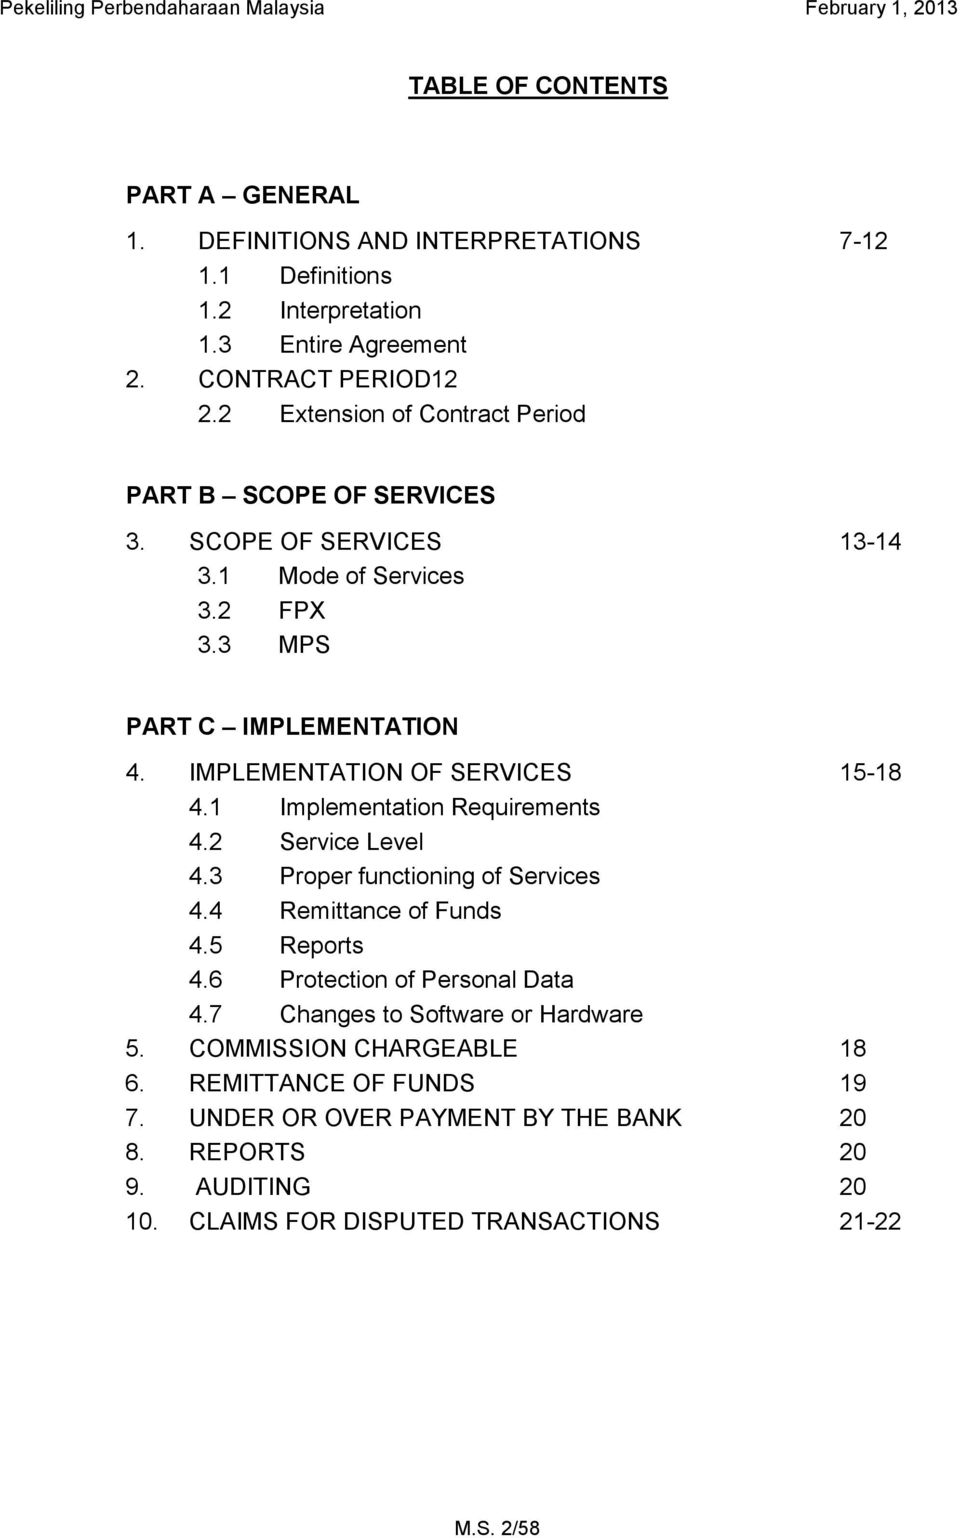 IMPLEMENTATION OF SERVICES 15-18 4.1 Implementation Requirements 4.2 Service Level 4.3 Proper functioning of Services 4.4 Remittance of Funds 4.5 Reports 4.